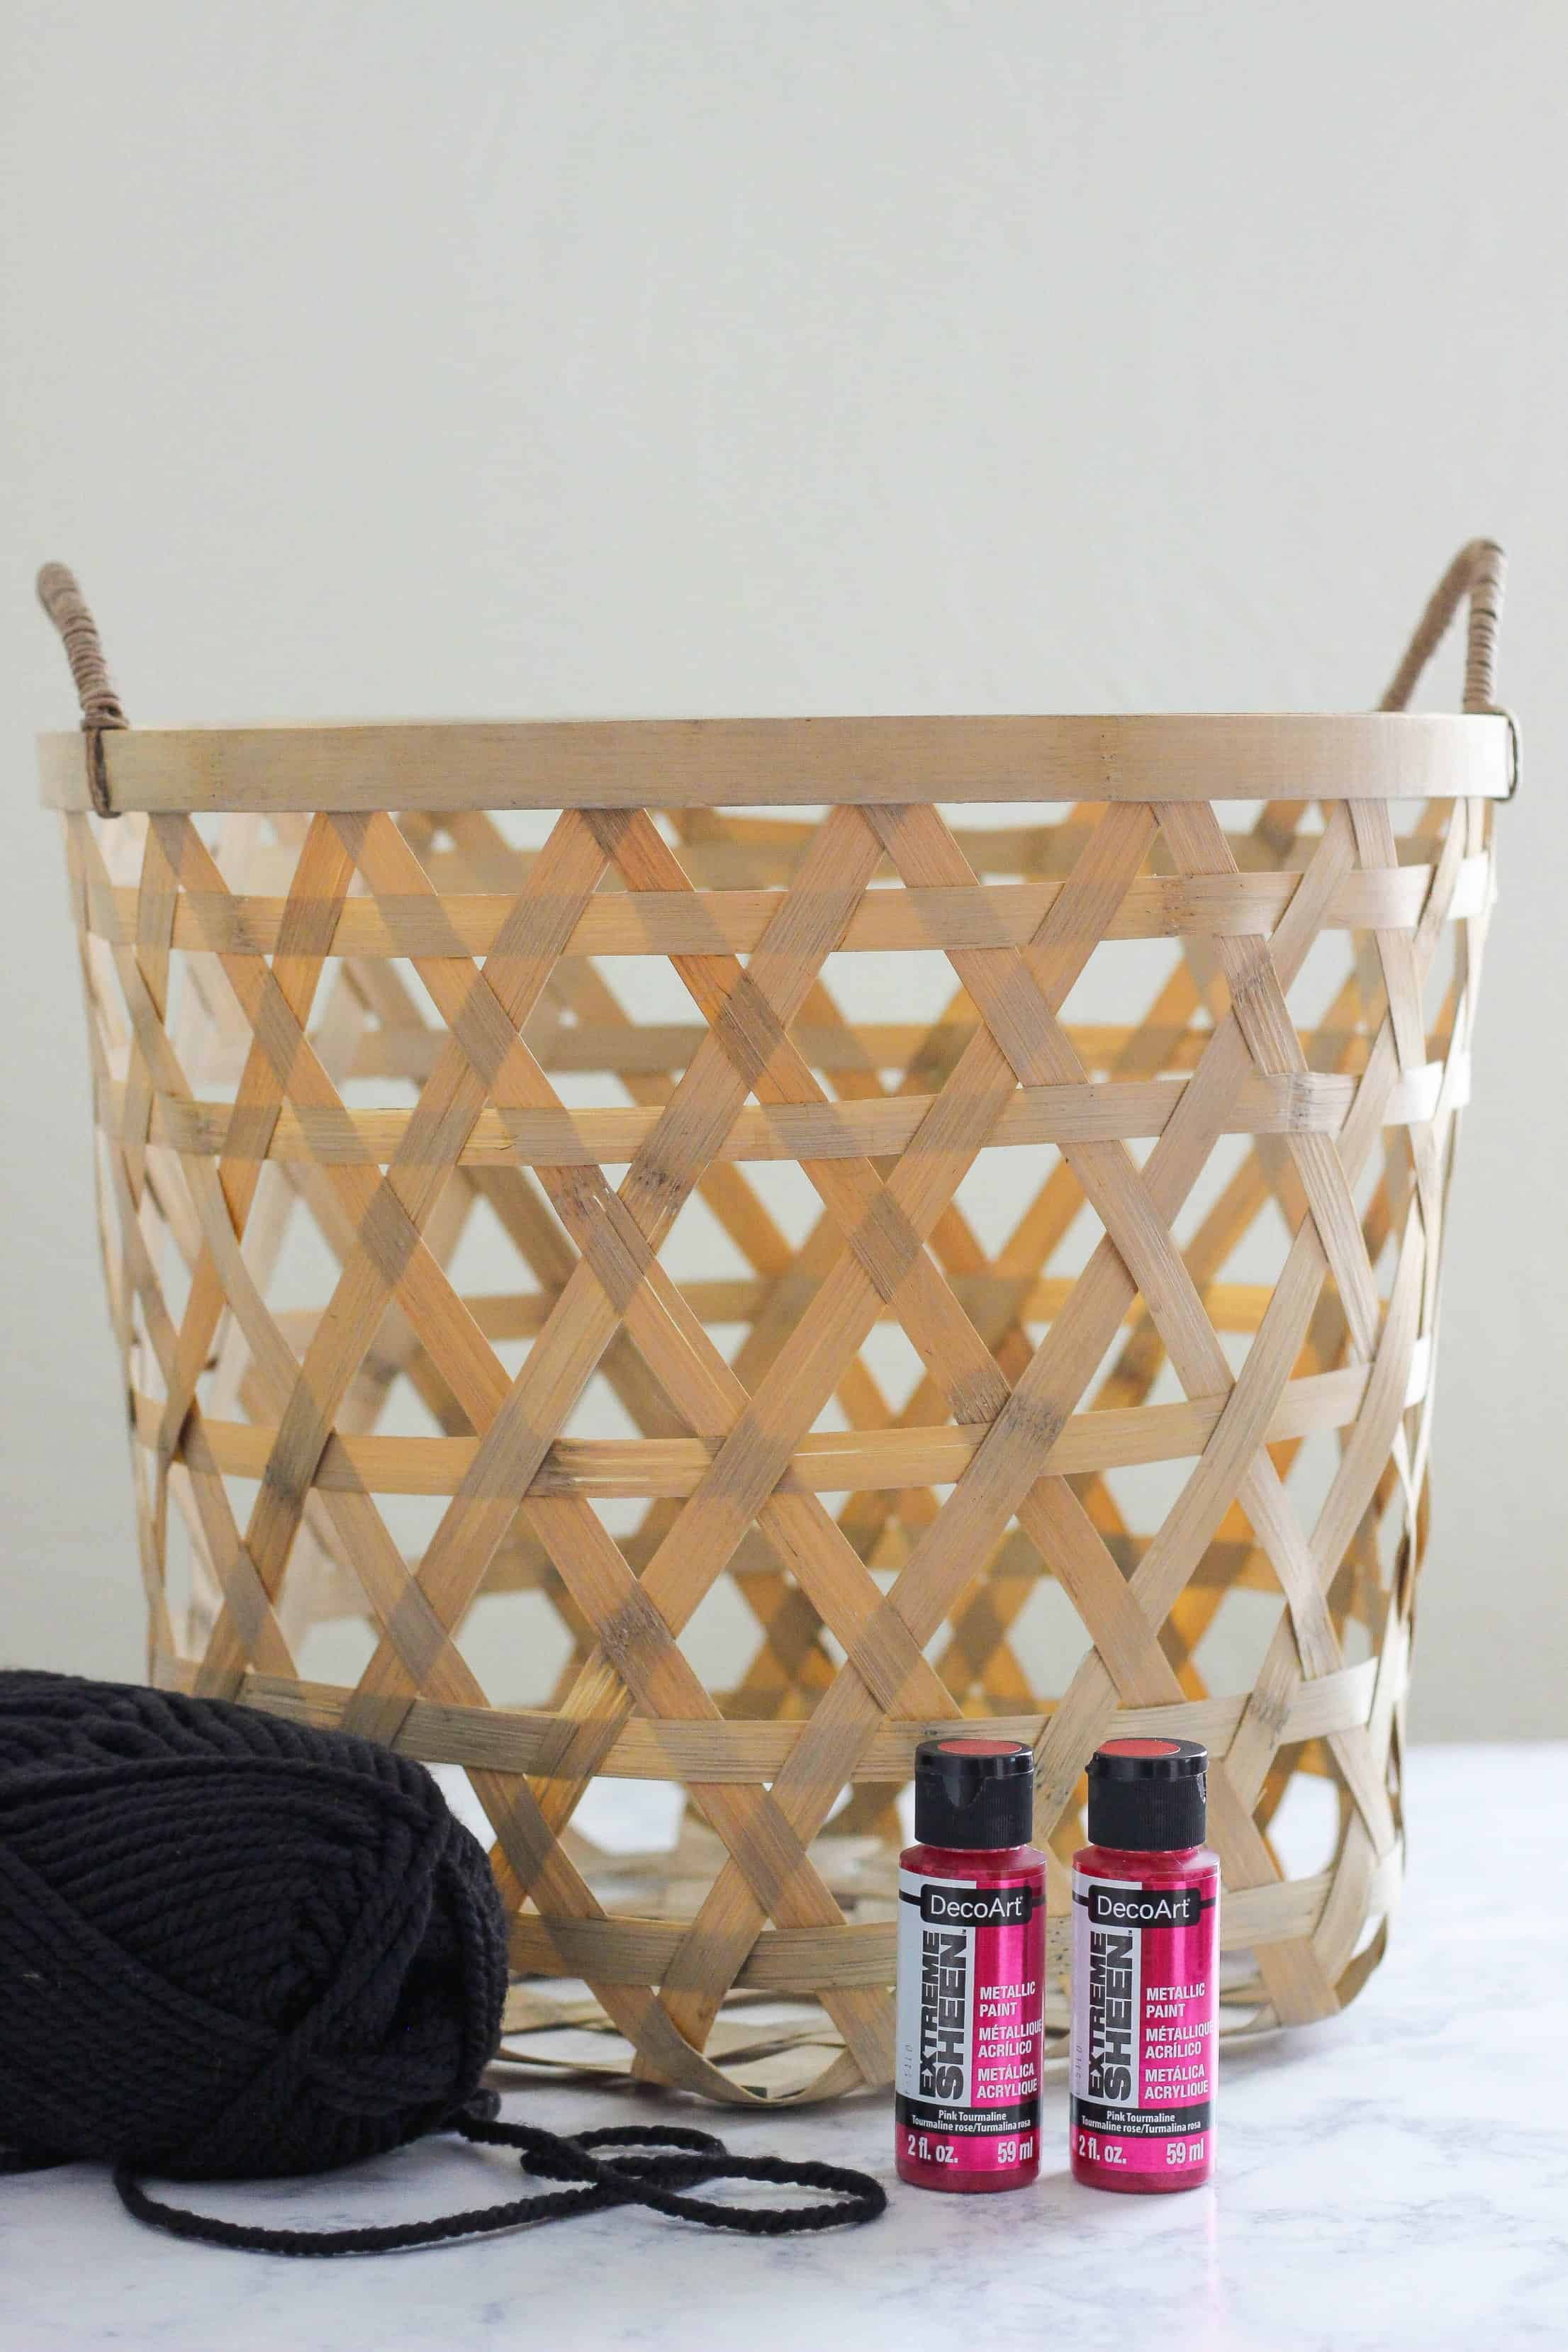 Make this DIY Metallic Boho Basket for a pop of shiny color to add to your home decor. This look is hot right now and it is easy to create.